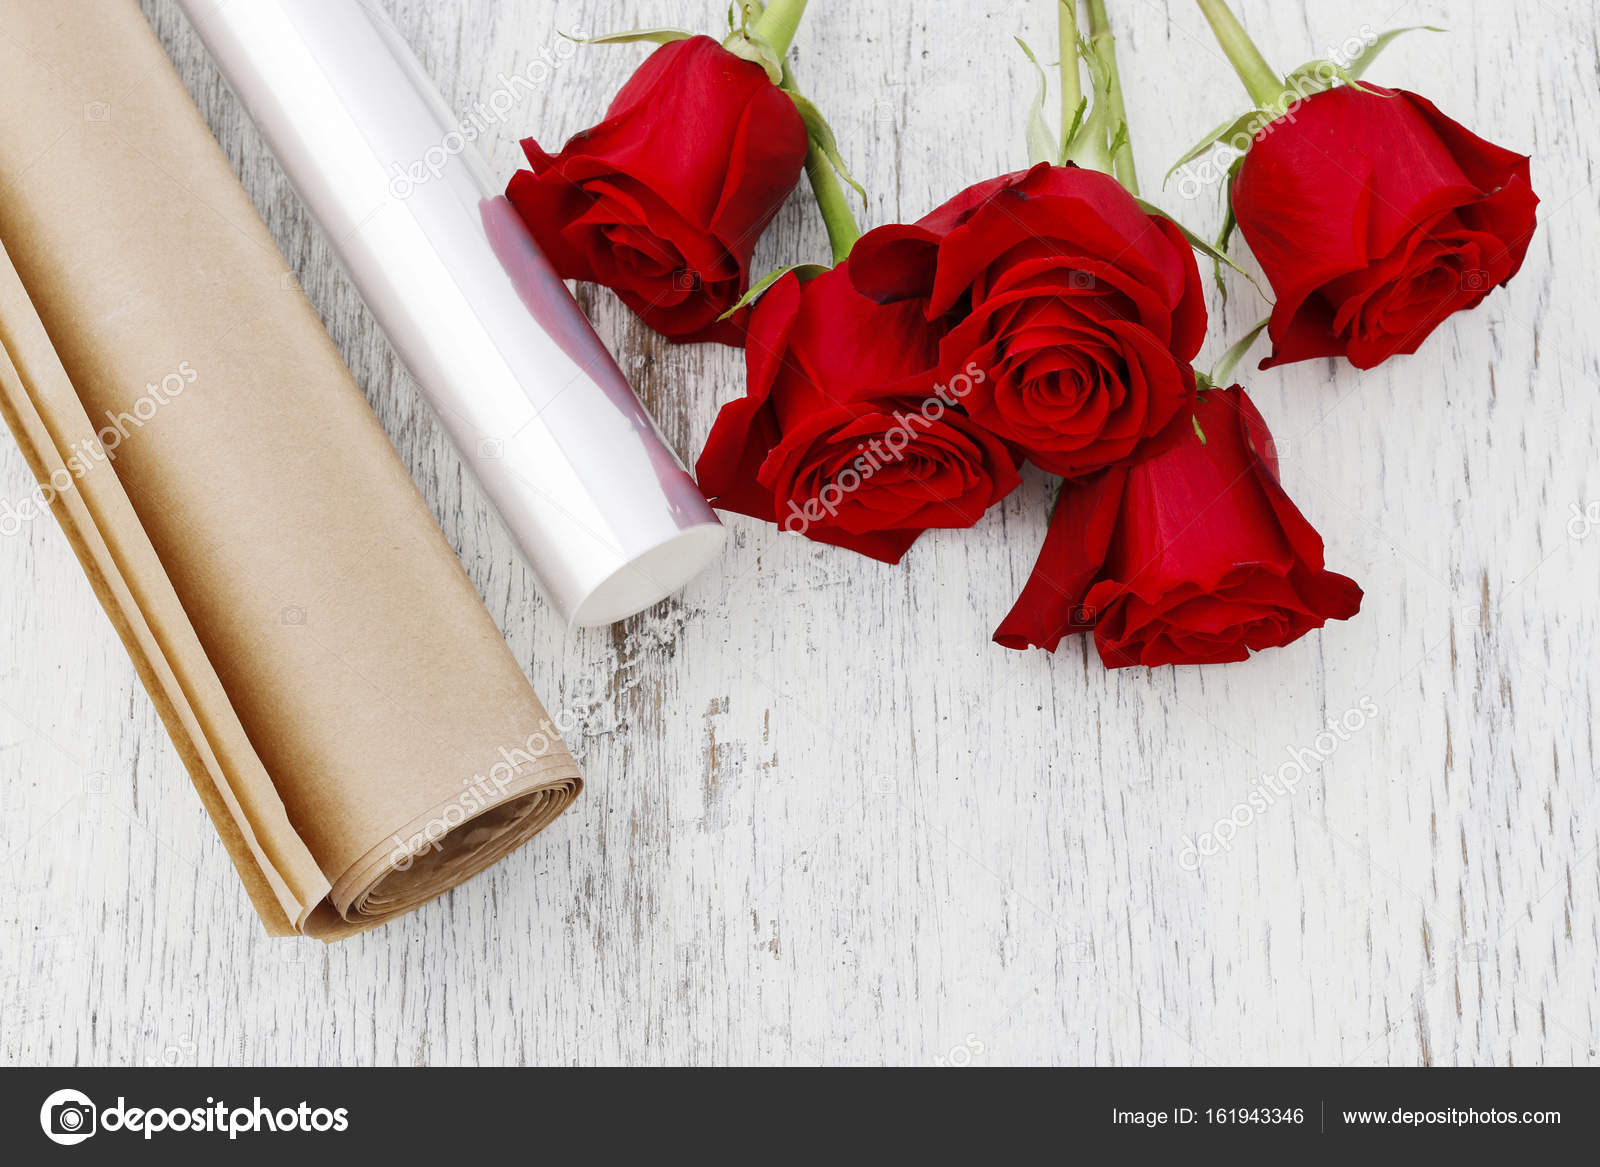 Paper or plastic stretch film as wrapping for red rose flowers paper or plastic stretch film as wrapping for red rose flowers stock photo mightylinksfo